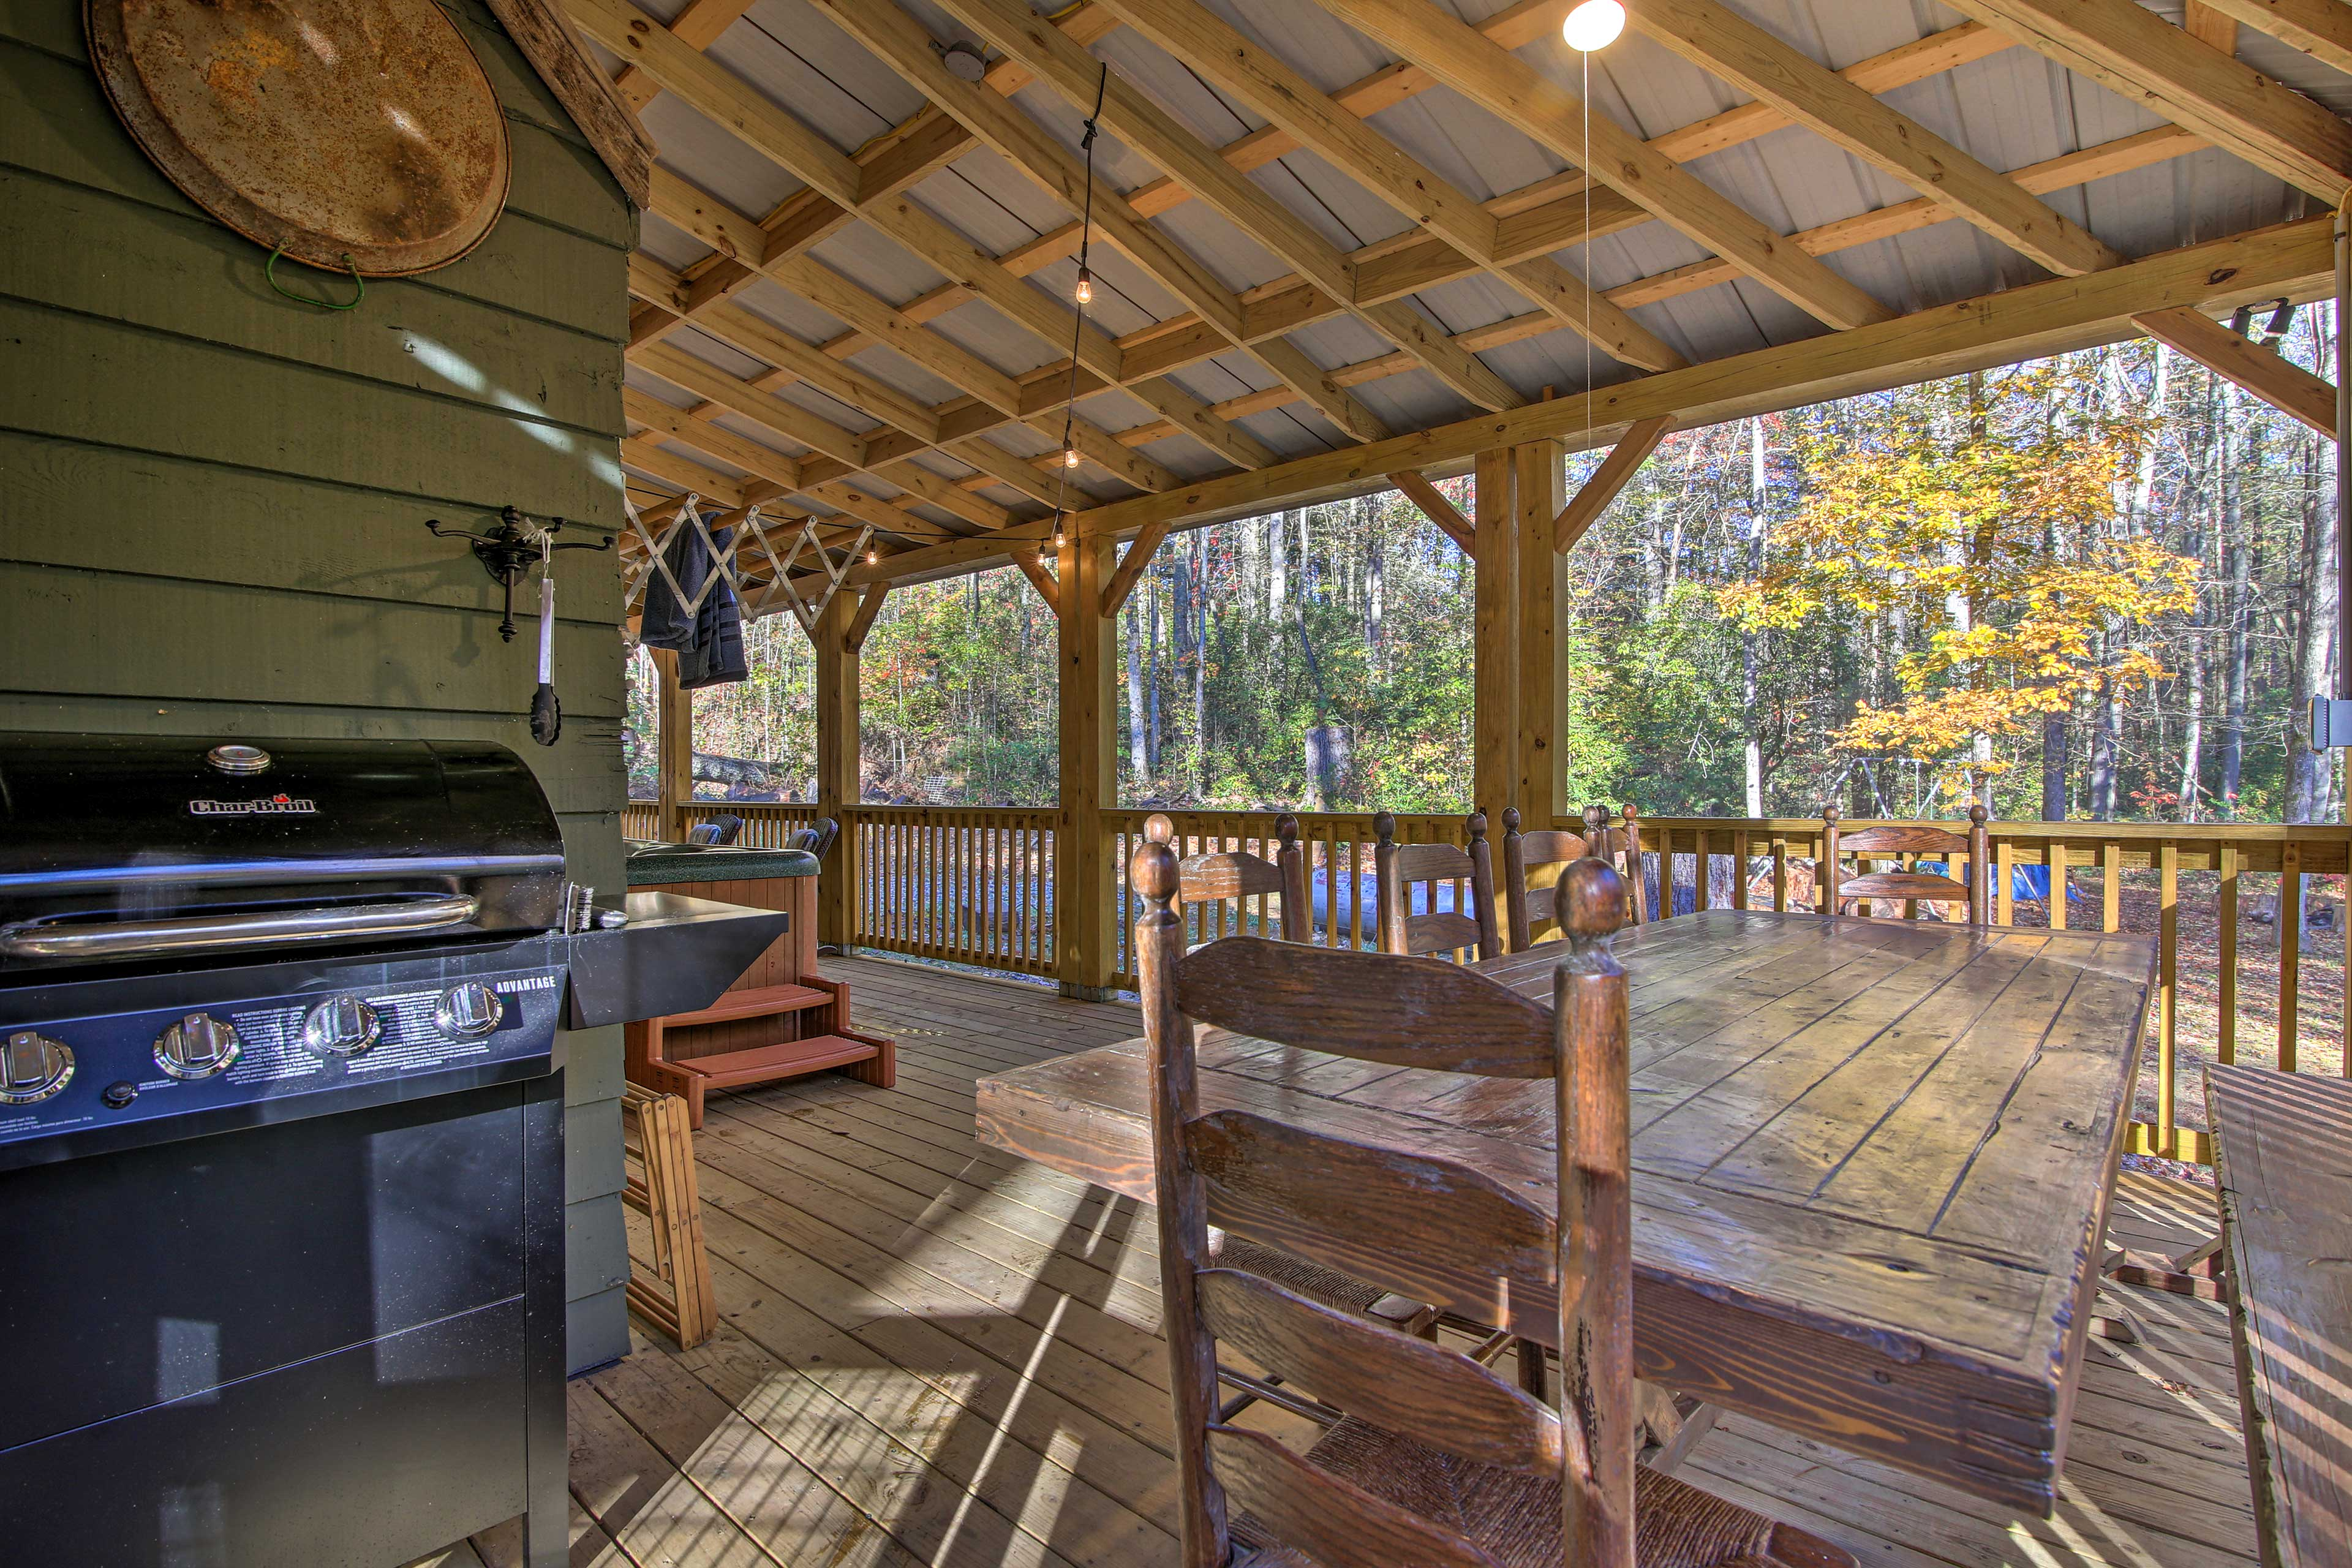 The screened-in portion of the porch has a gas grill, dining, and a hot tub.